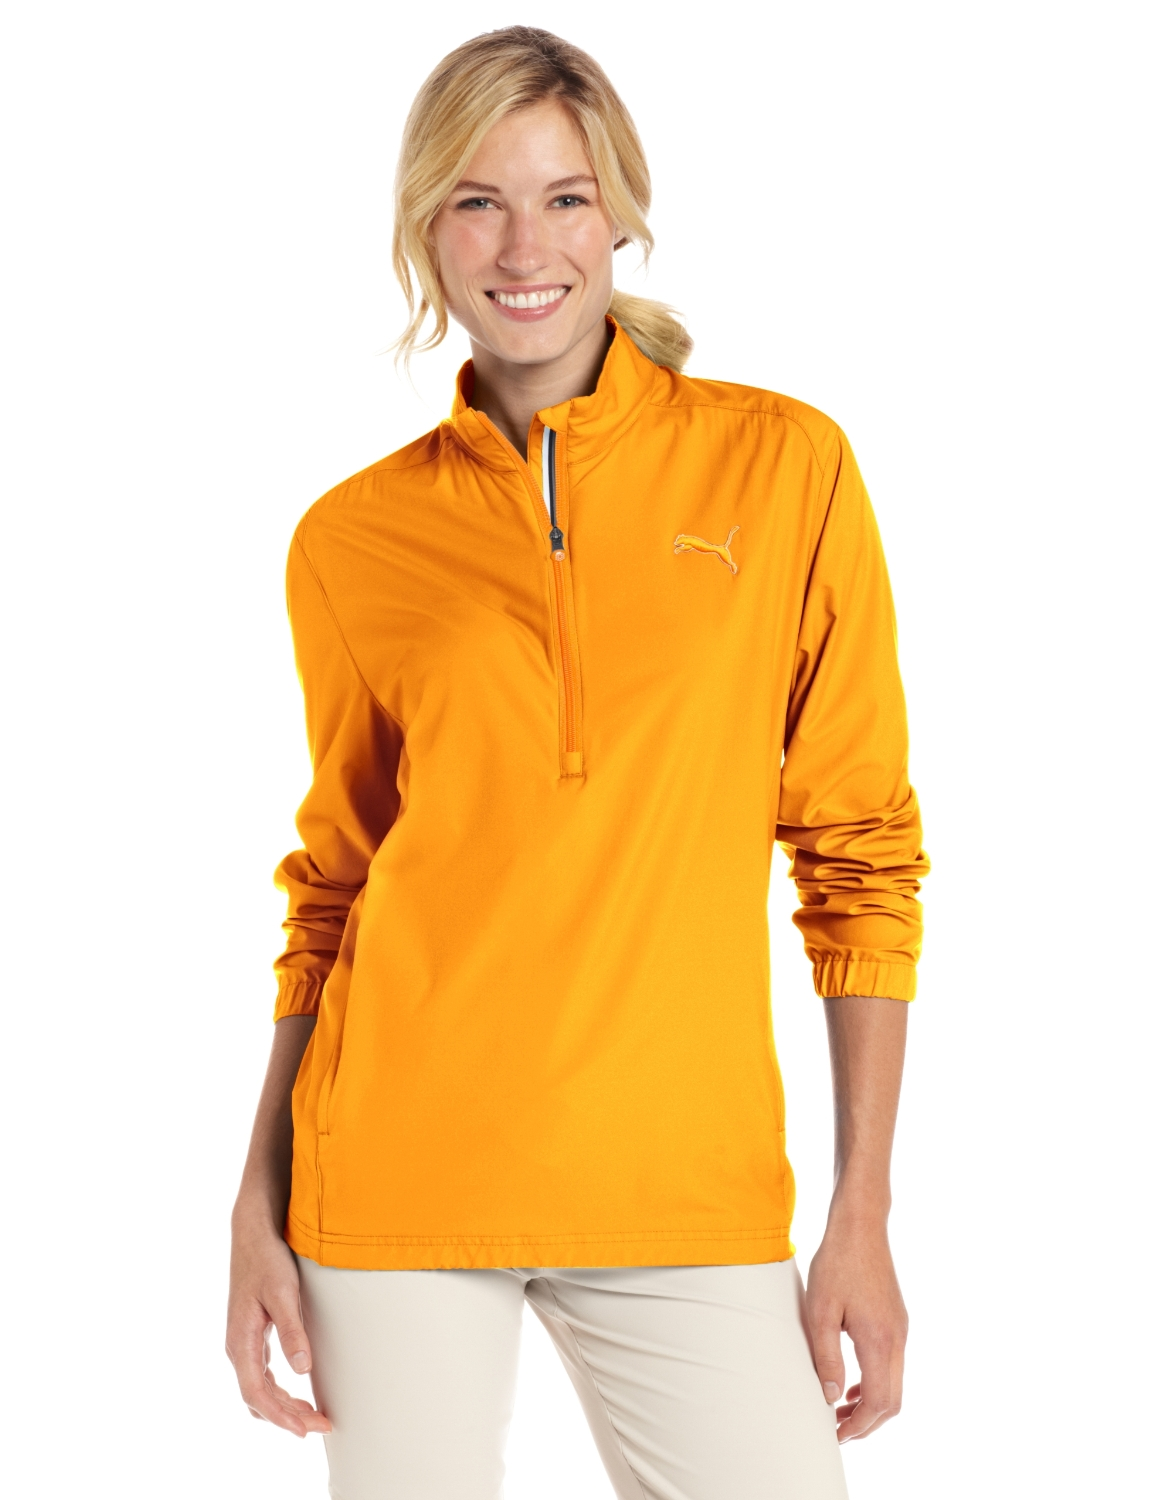 Puma Womens Golf Jackets